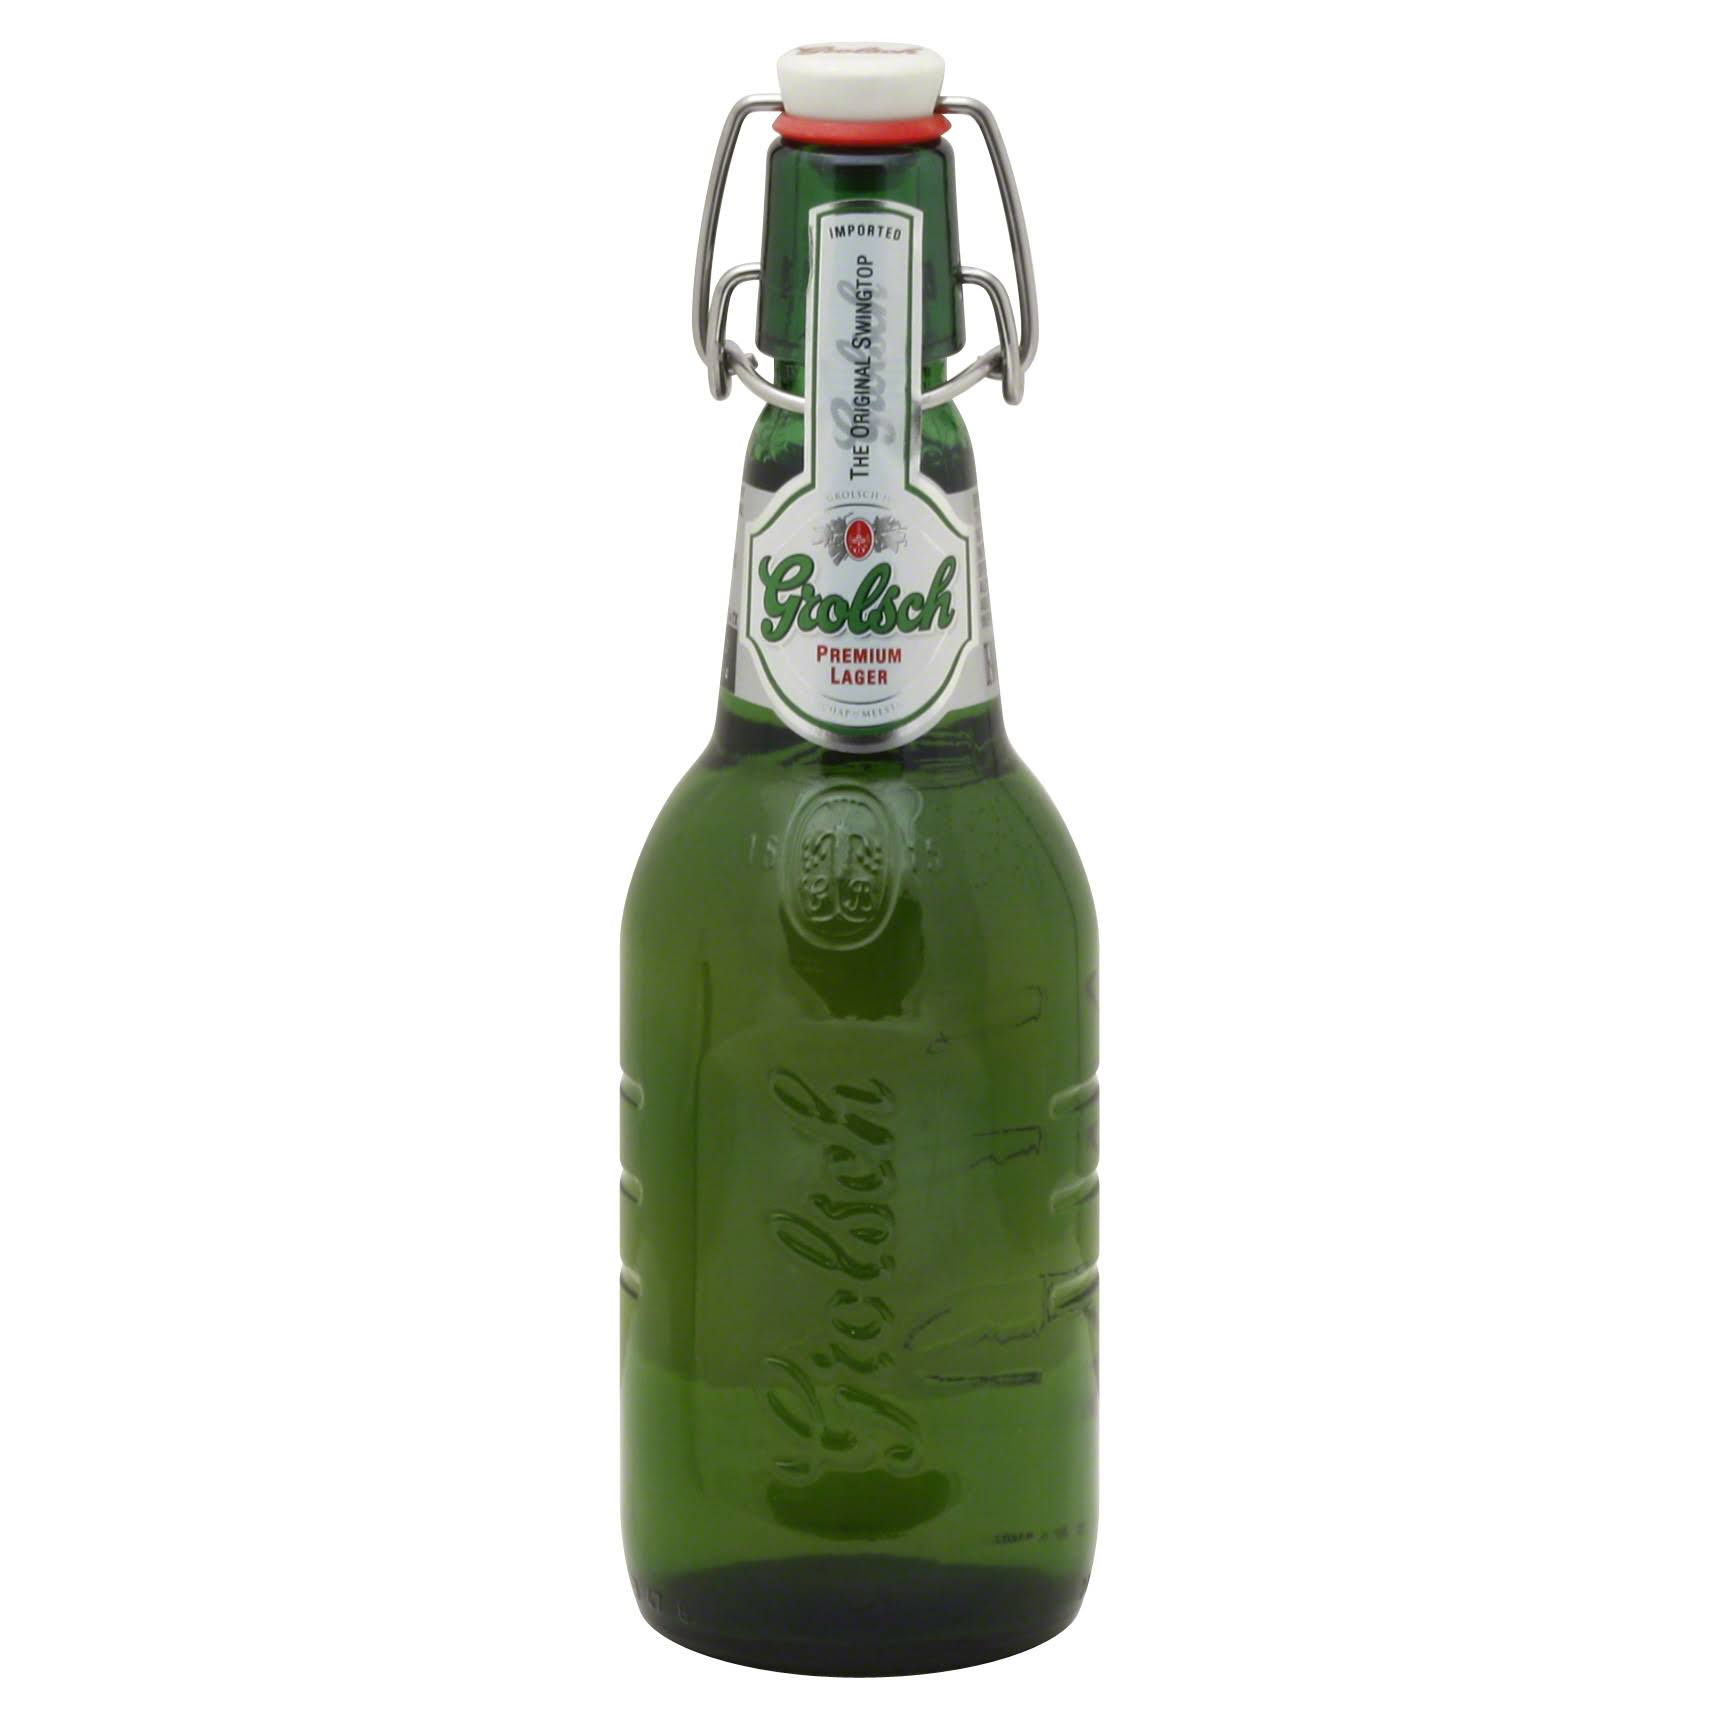 Grolsch Premium Swing Top Lager - 16 oz